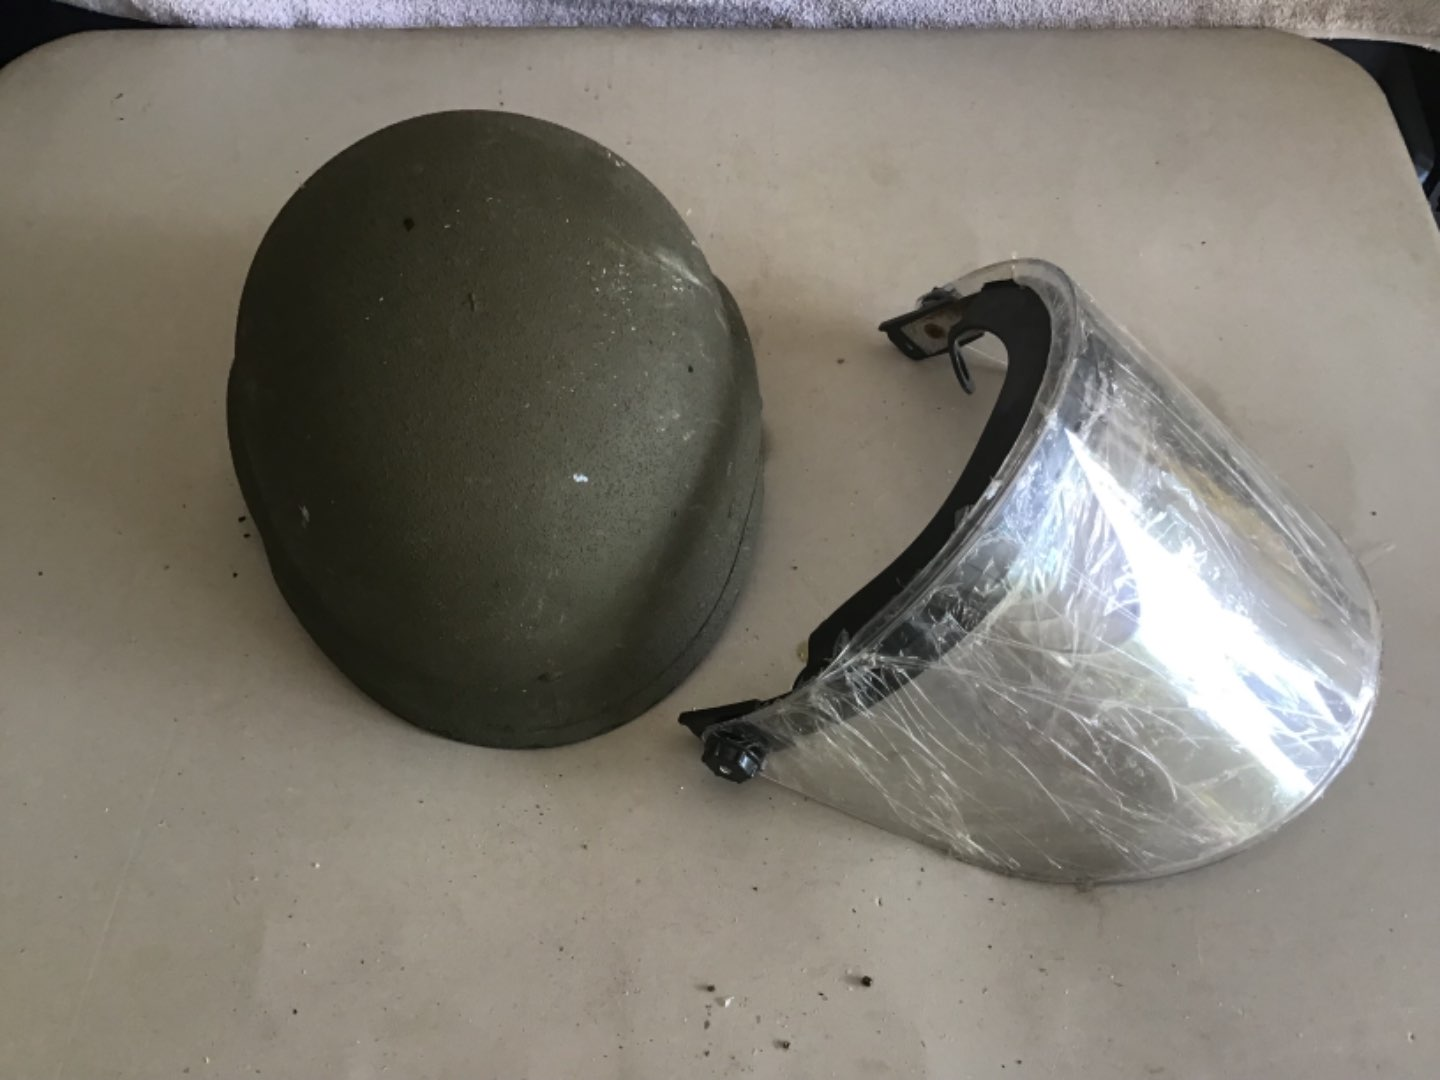 Lot # 149 US MILITARY OR RIOT POLICE HELMET W/SHIELD - See Descrip in Lot 142